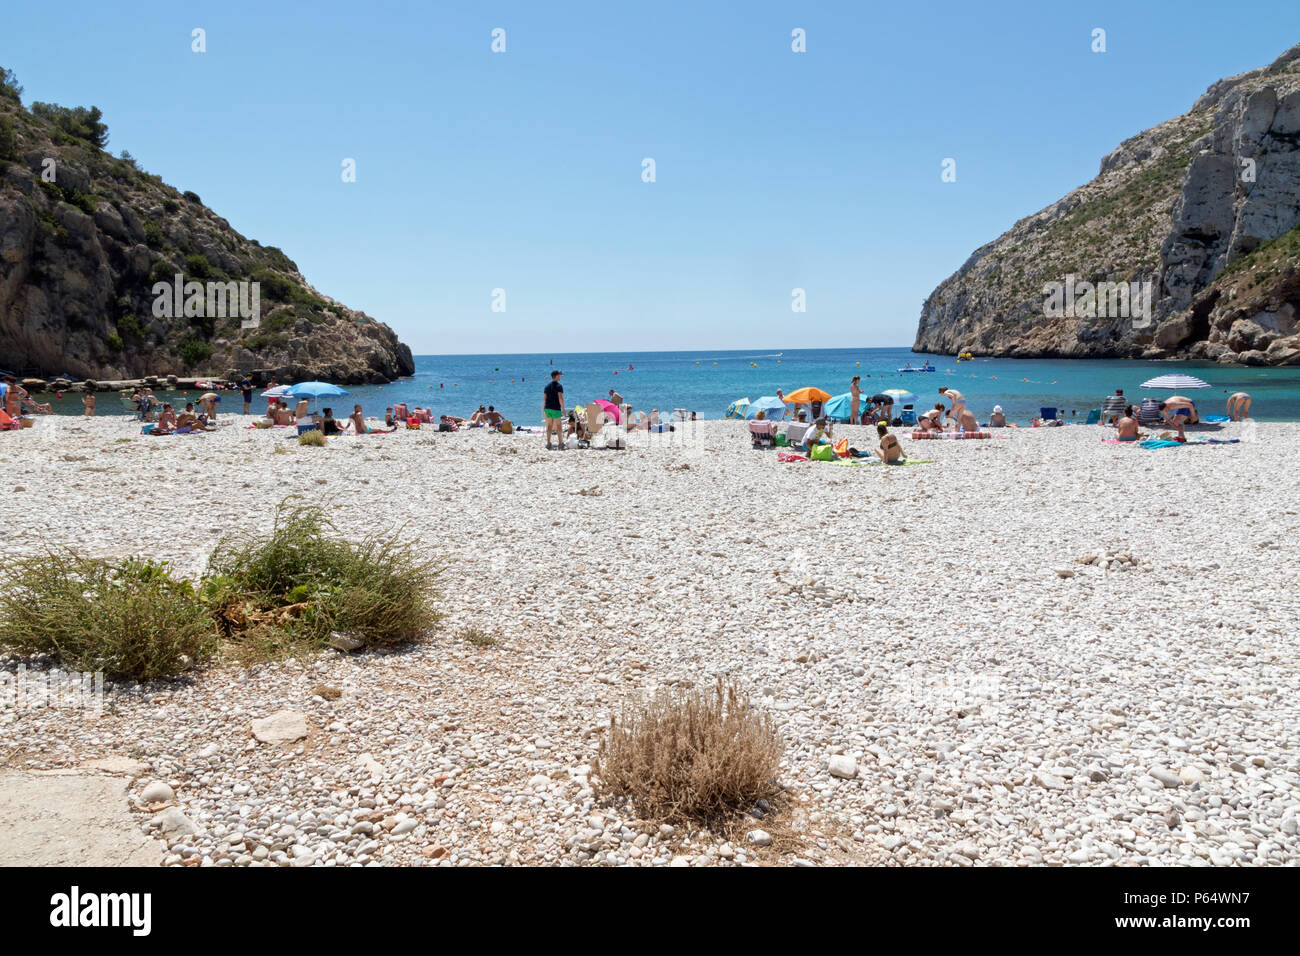 Playa De La Granadella In Javea Spain Stock Photo Alamy